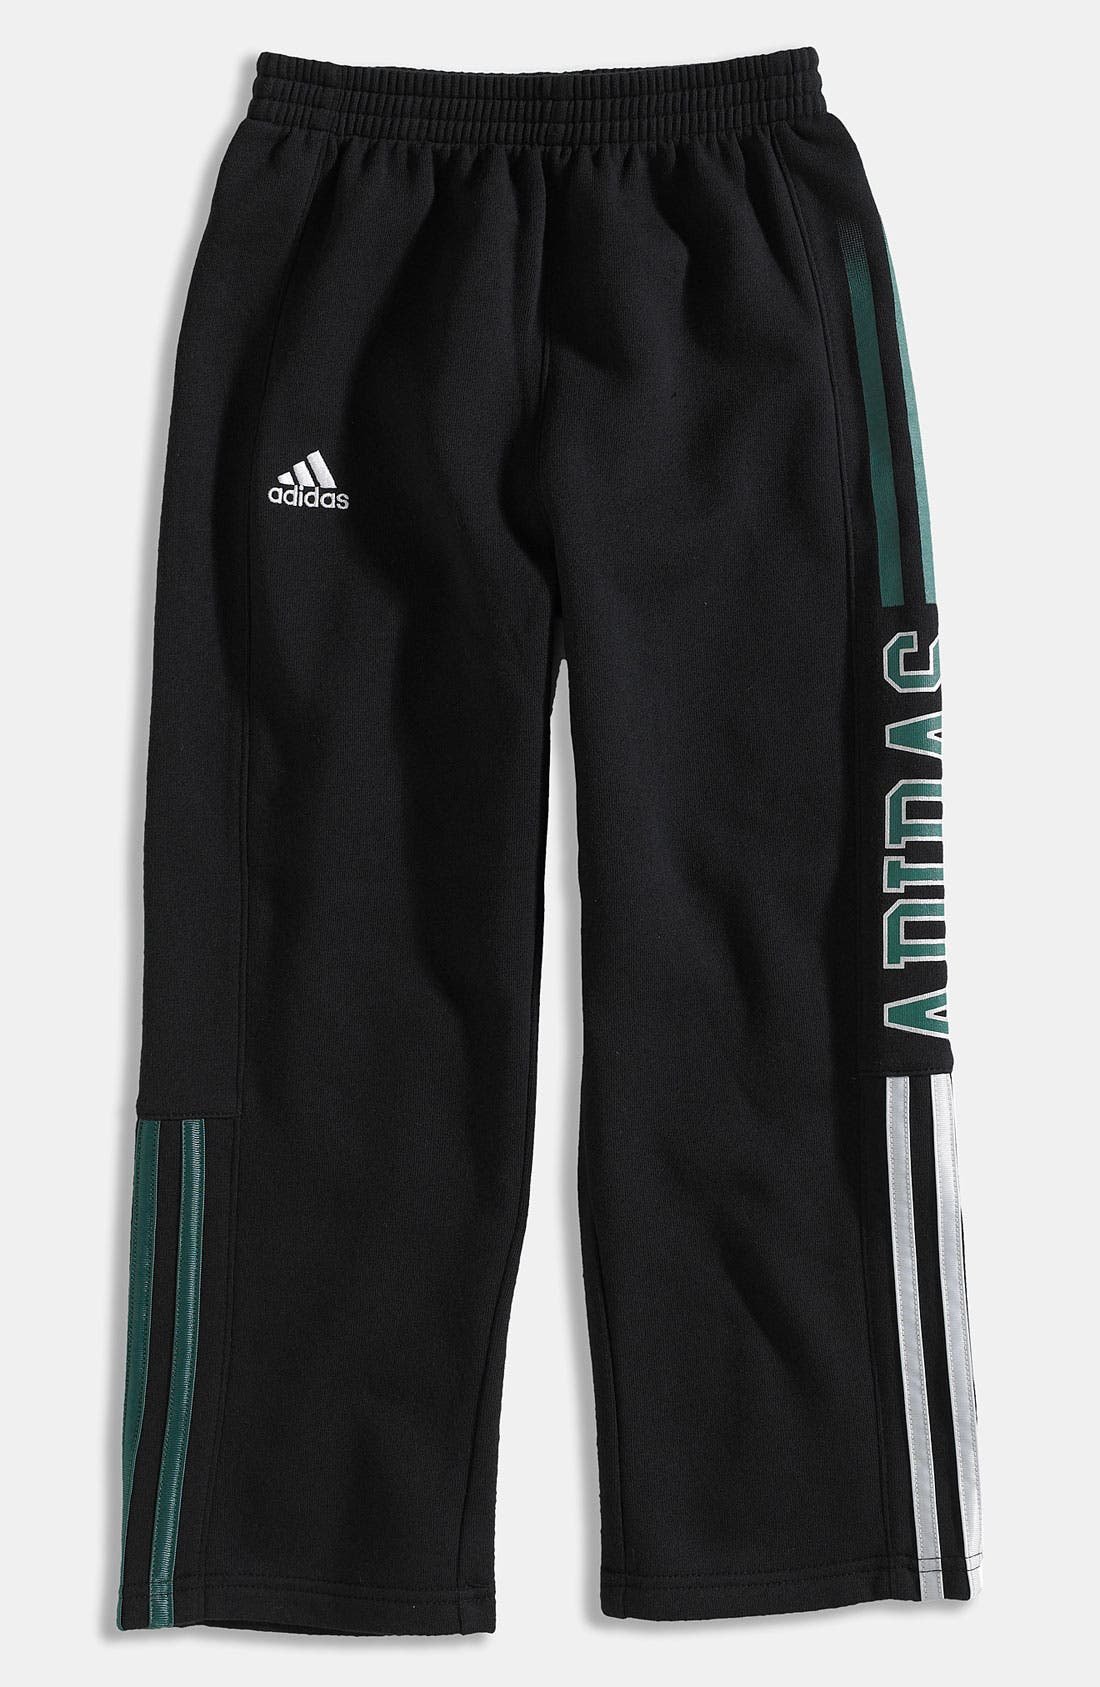 Alternate Image 1 Selected - adidas 'Action' Pants (Little Boys)